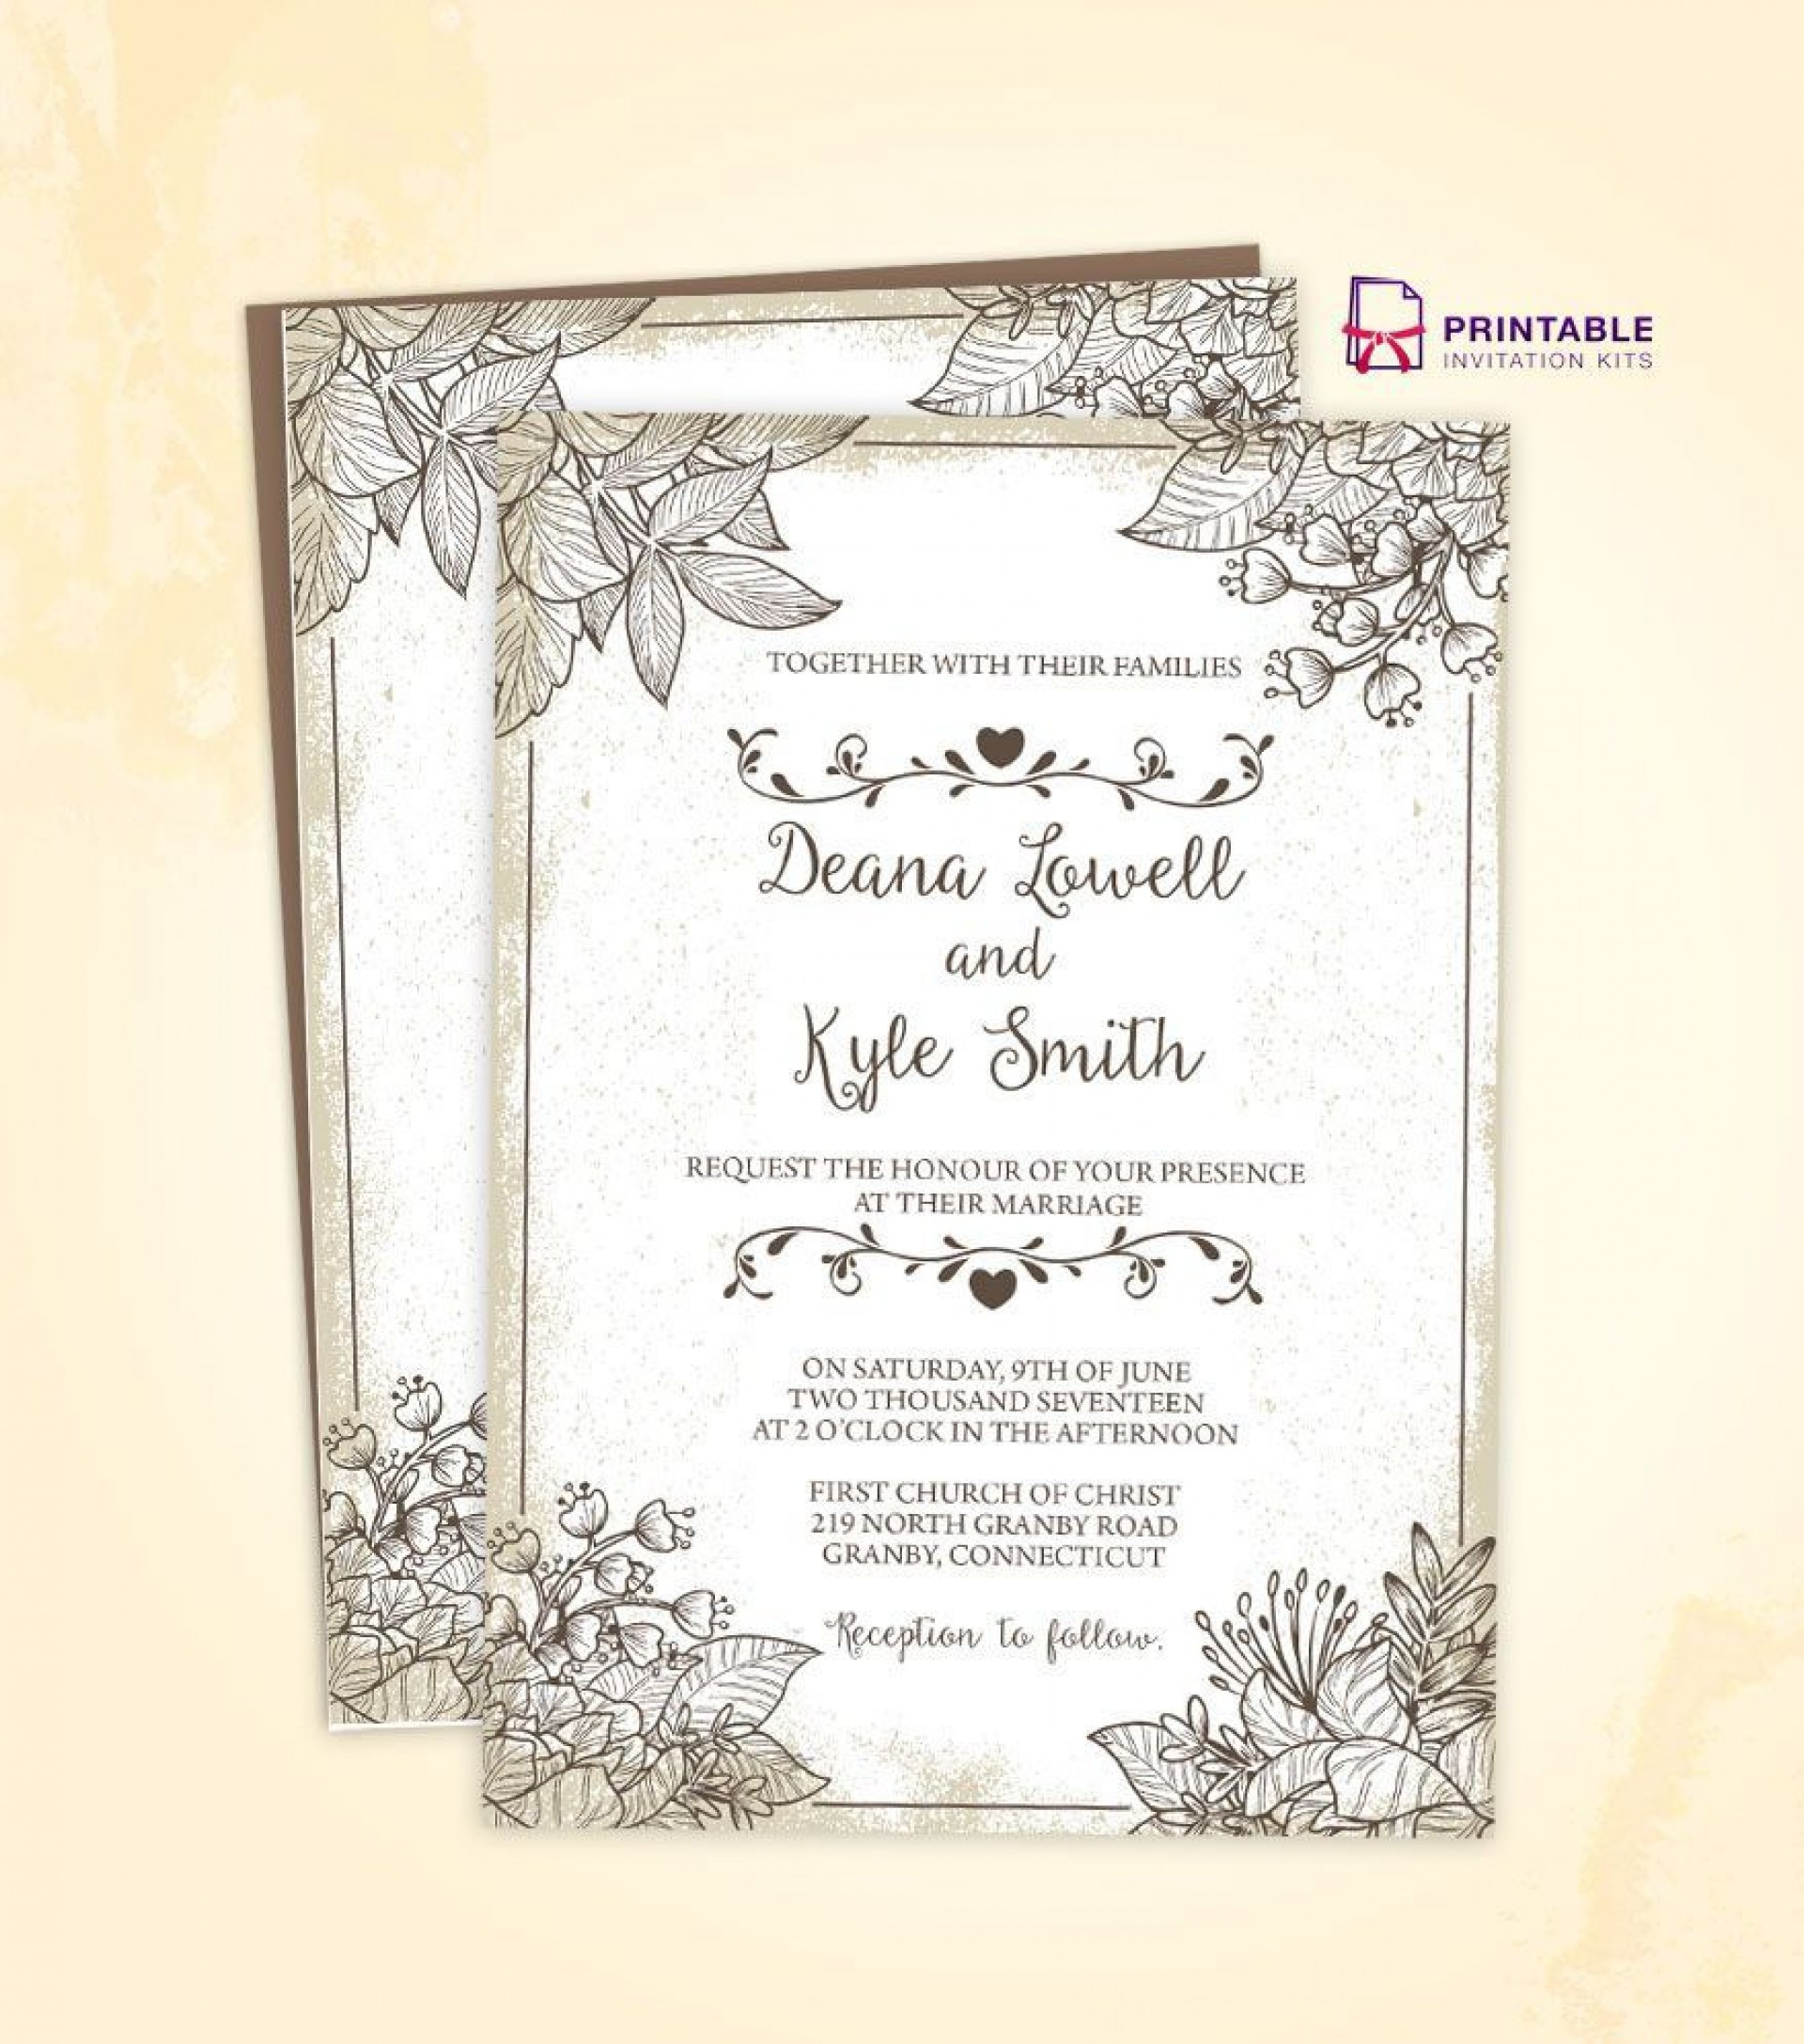 000 Wondrou Free Download Wedding Invitation Template Example  Marathi Video Maker Software Editable Rustic For Word1920